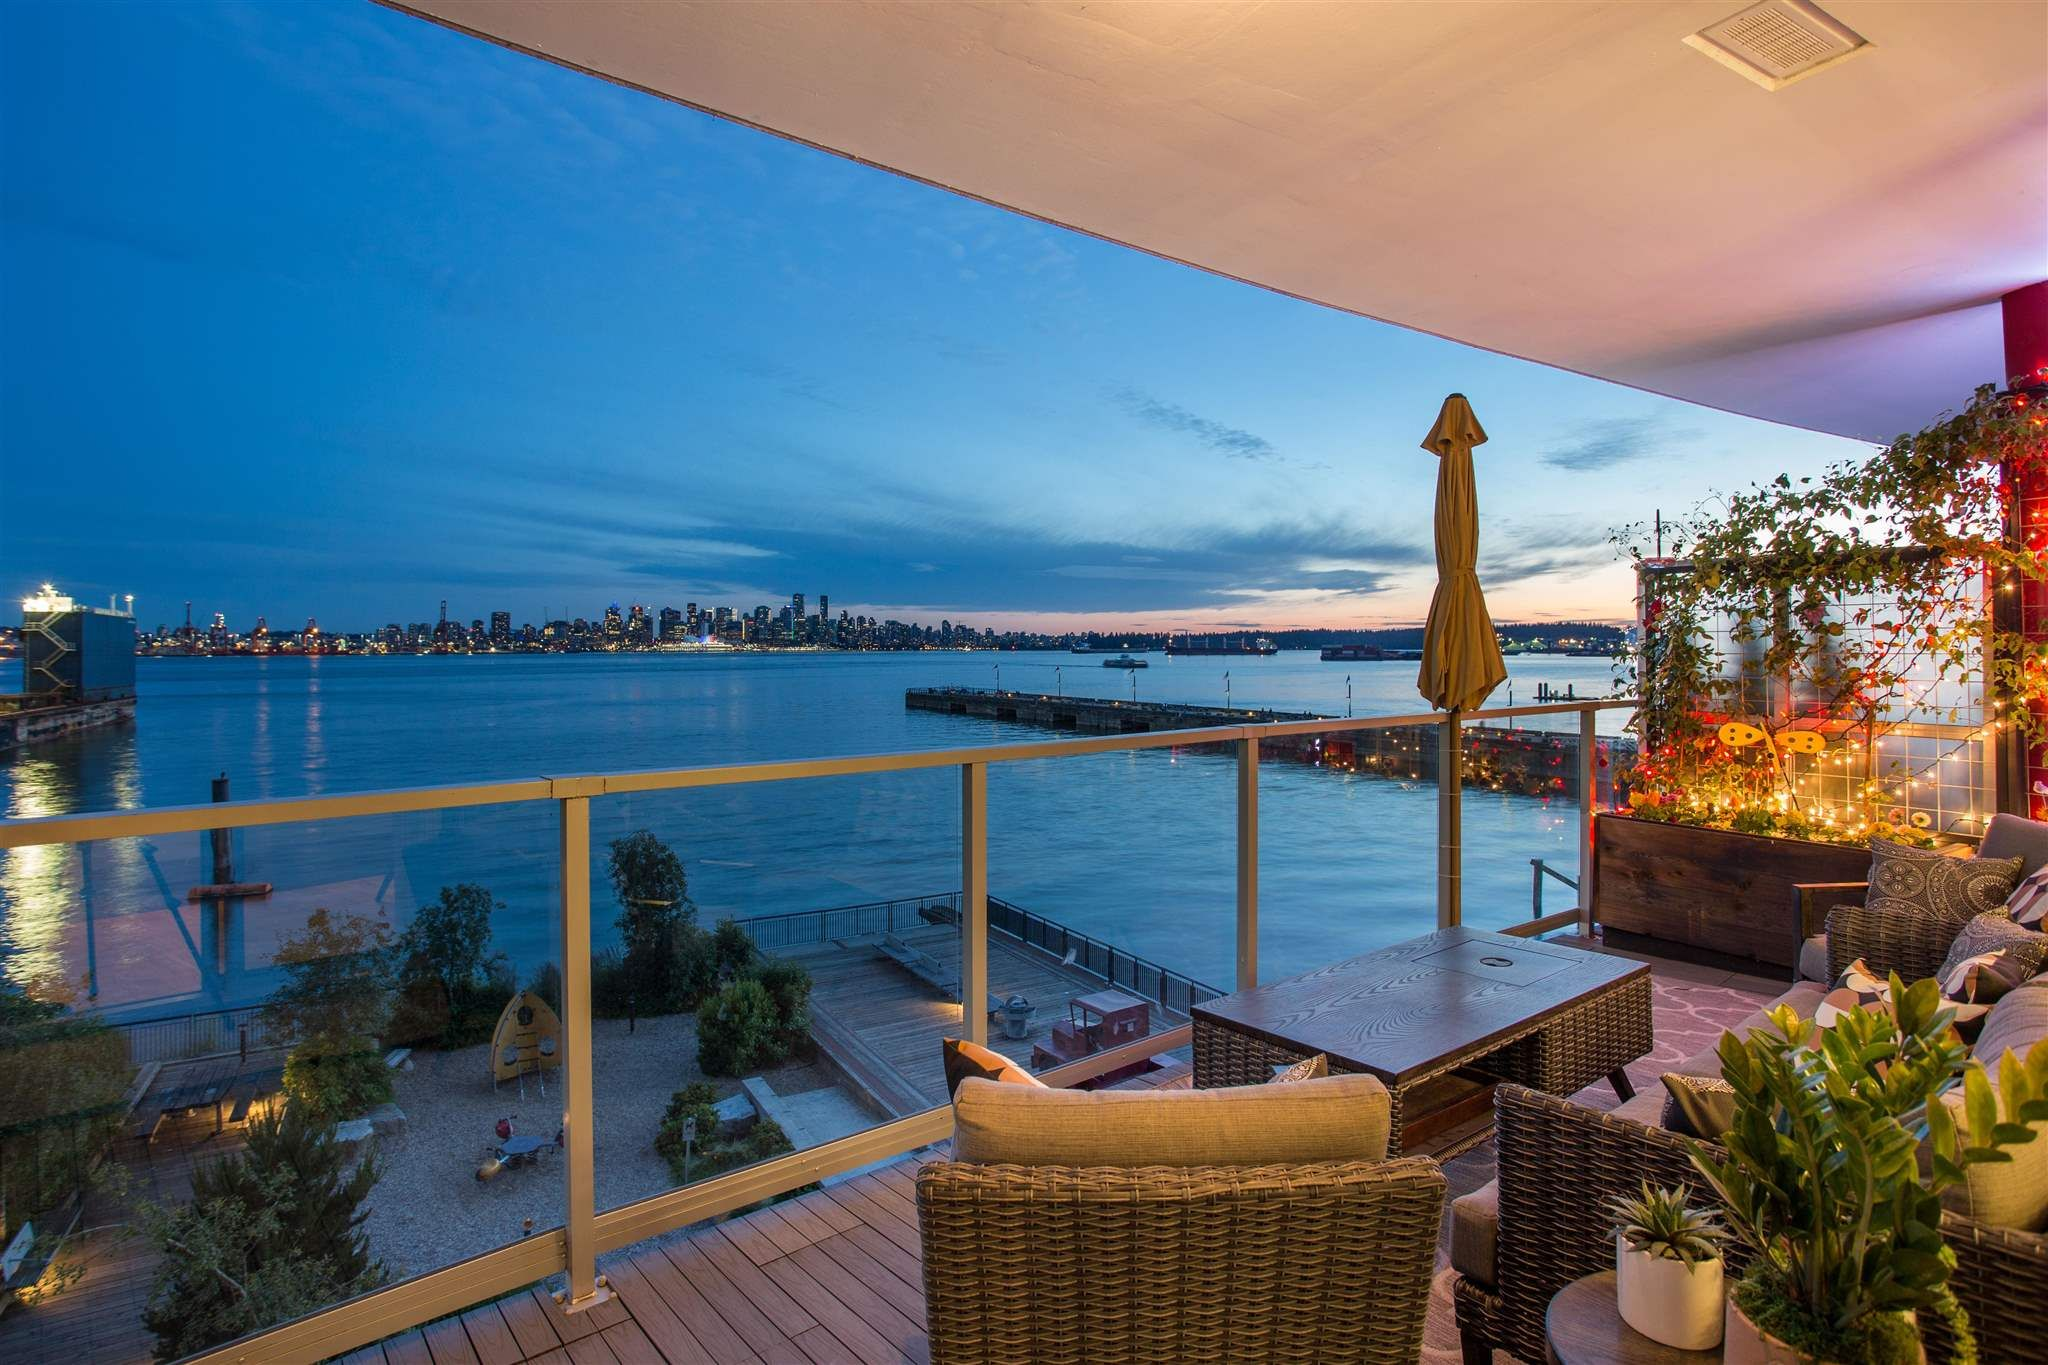 """Main Photo: 301 185 VICTORY SHIP Way in North Vancouver: Lower Lonsdale Condo for sale in """"Cascade"""" : MLS®# R2618389"""